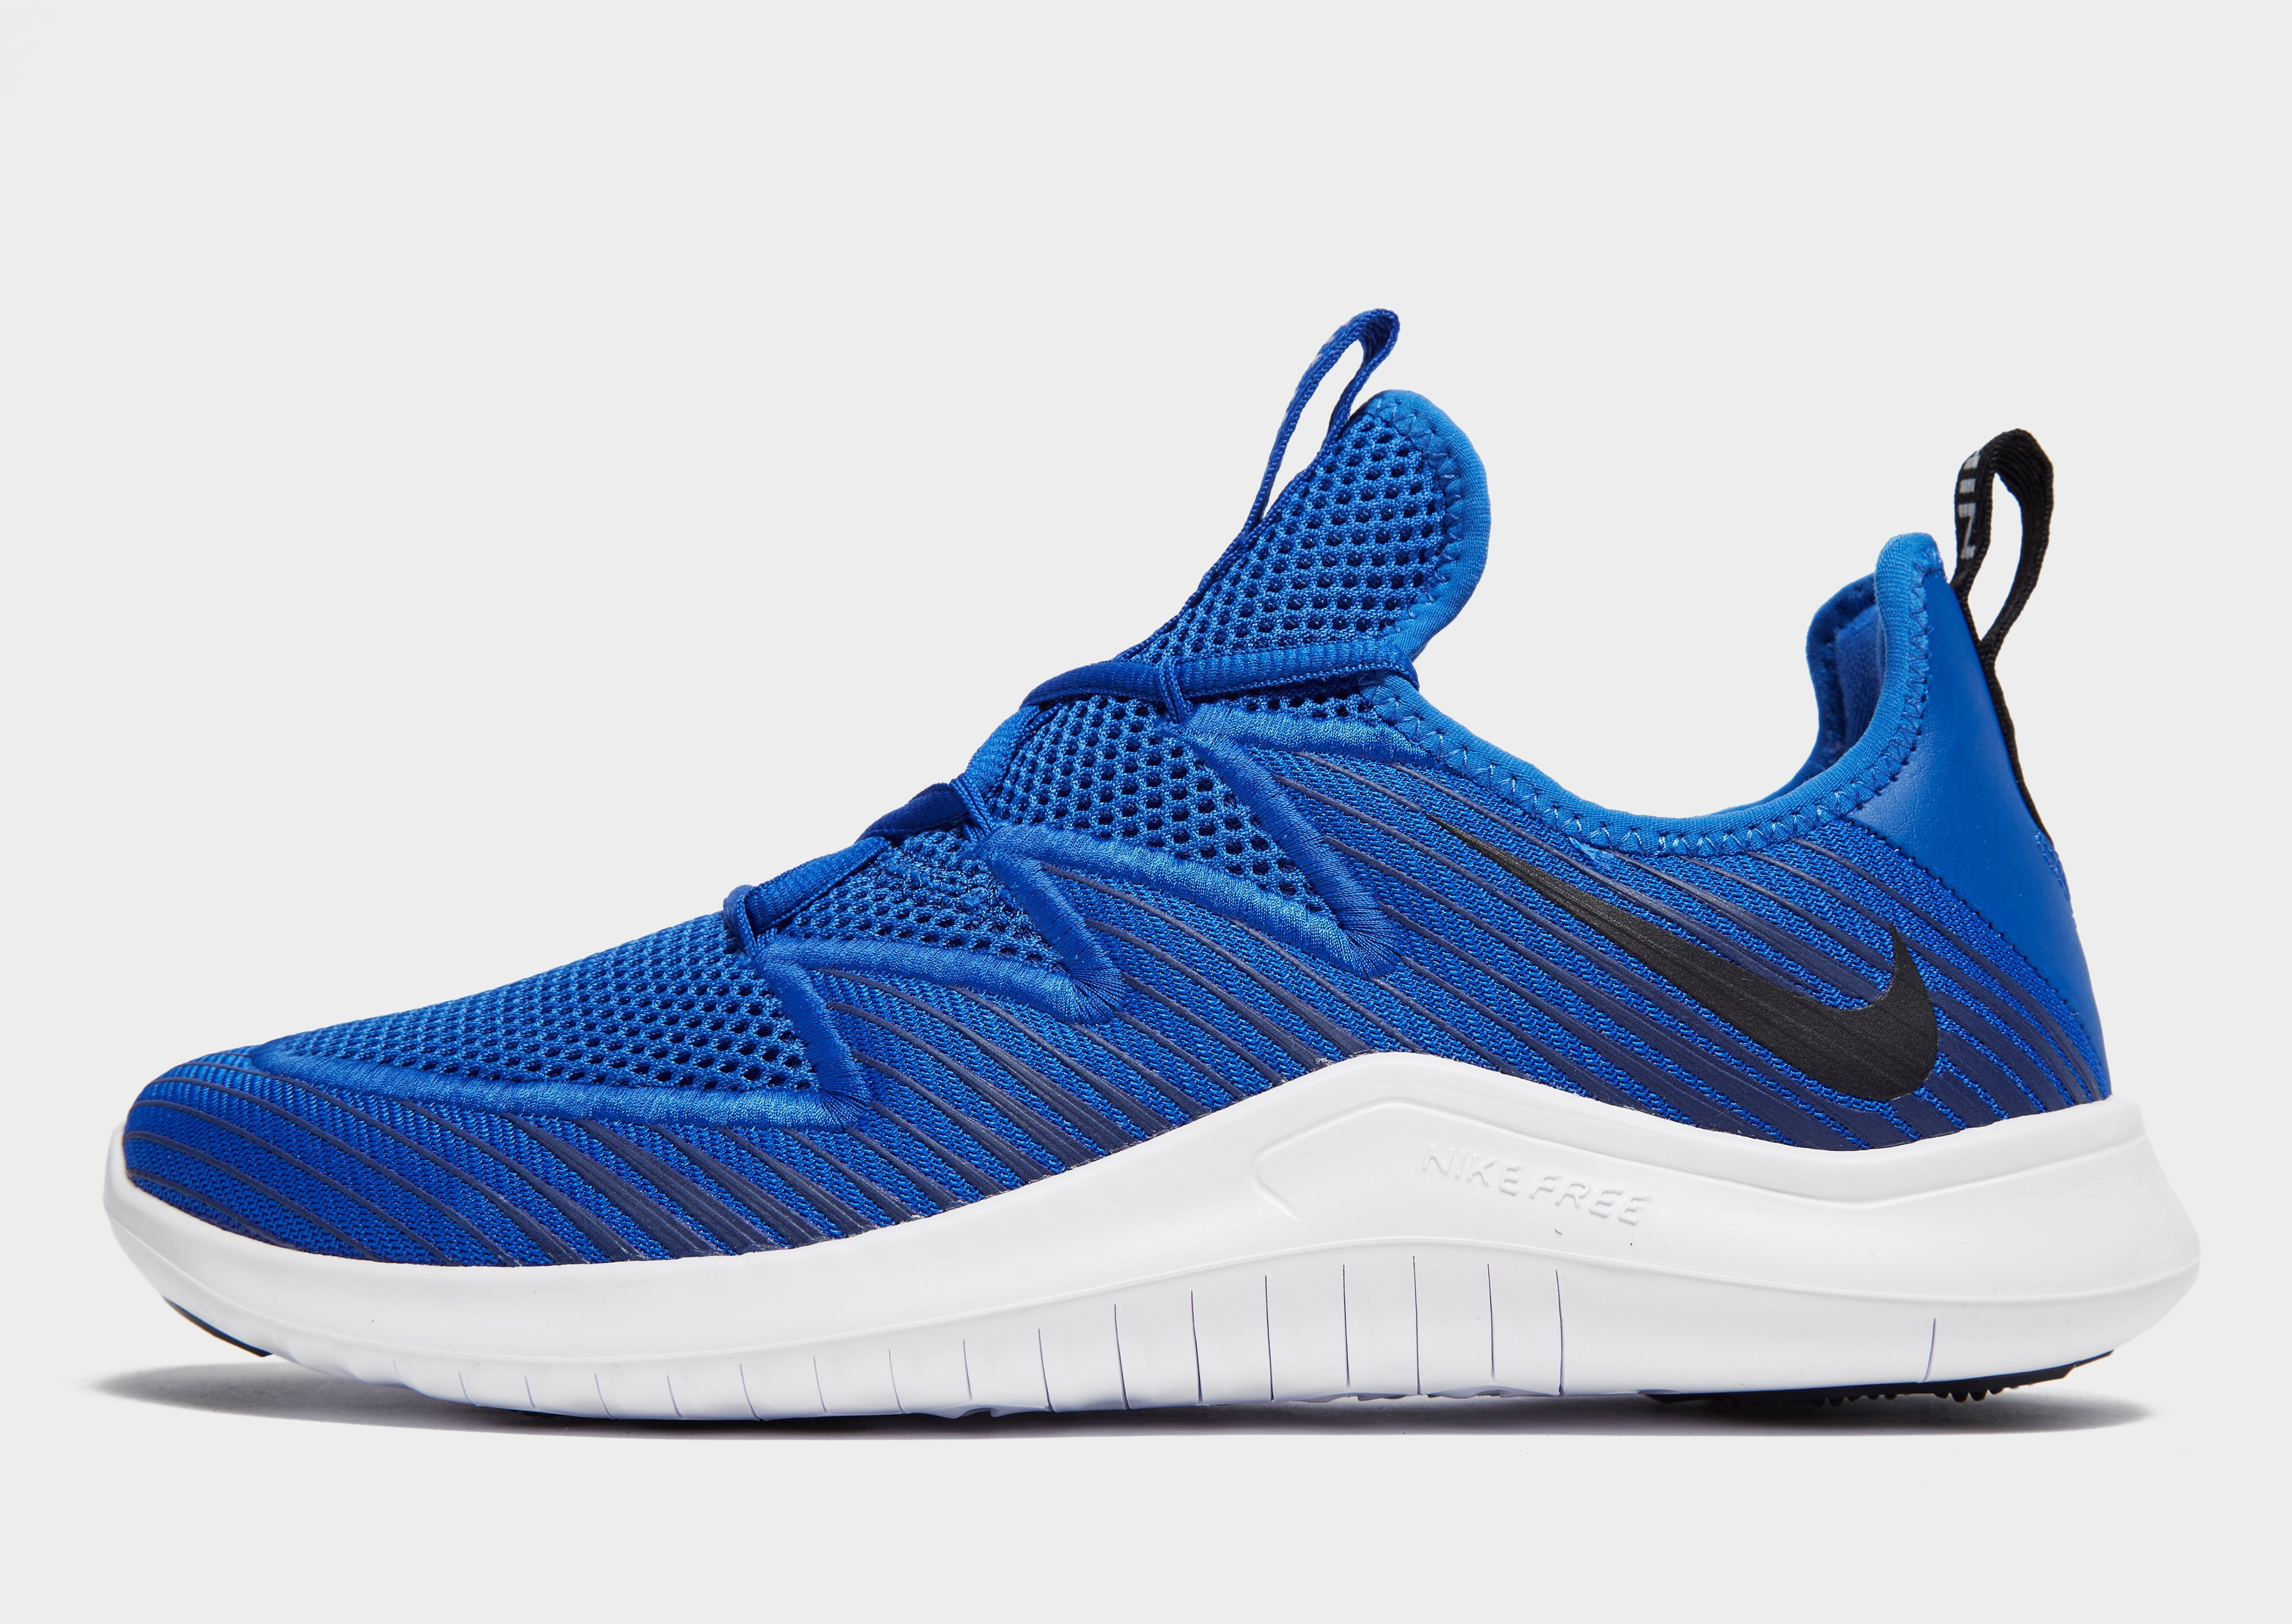 meilleure sélection ab427 2db33 NIKE Nike Free TR 9 Ultra Men's Training Shoe | JD Sports